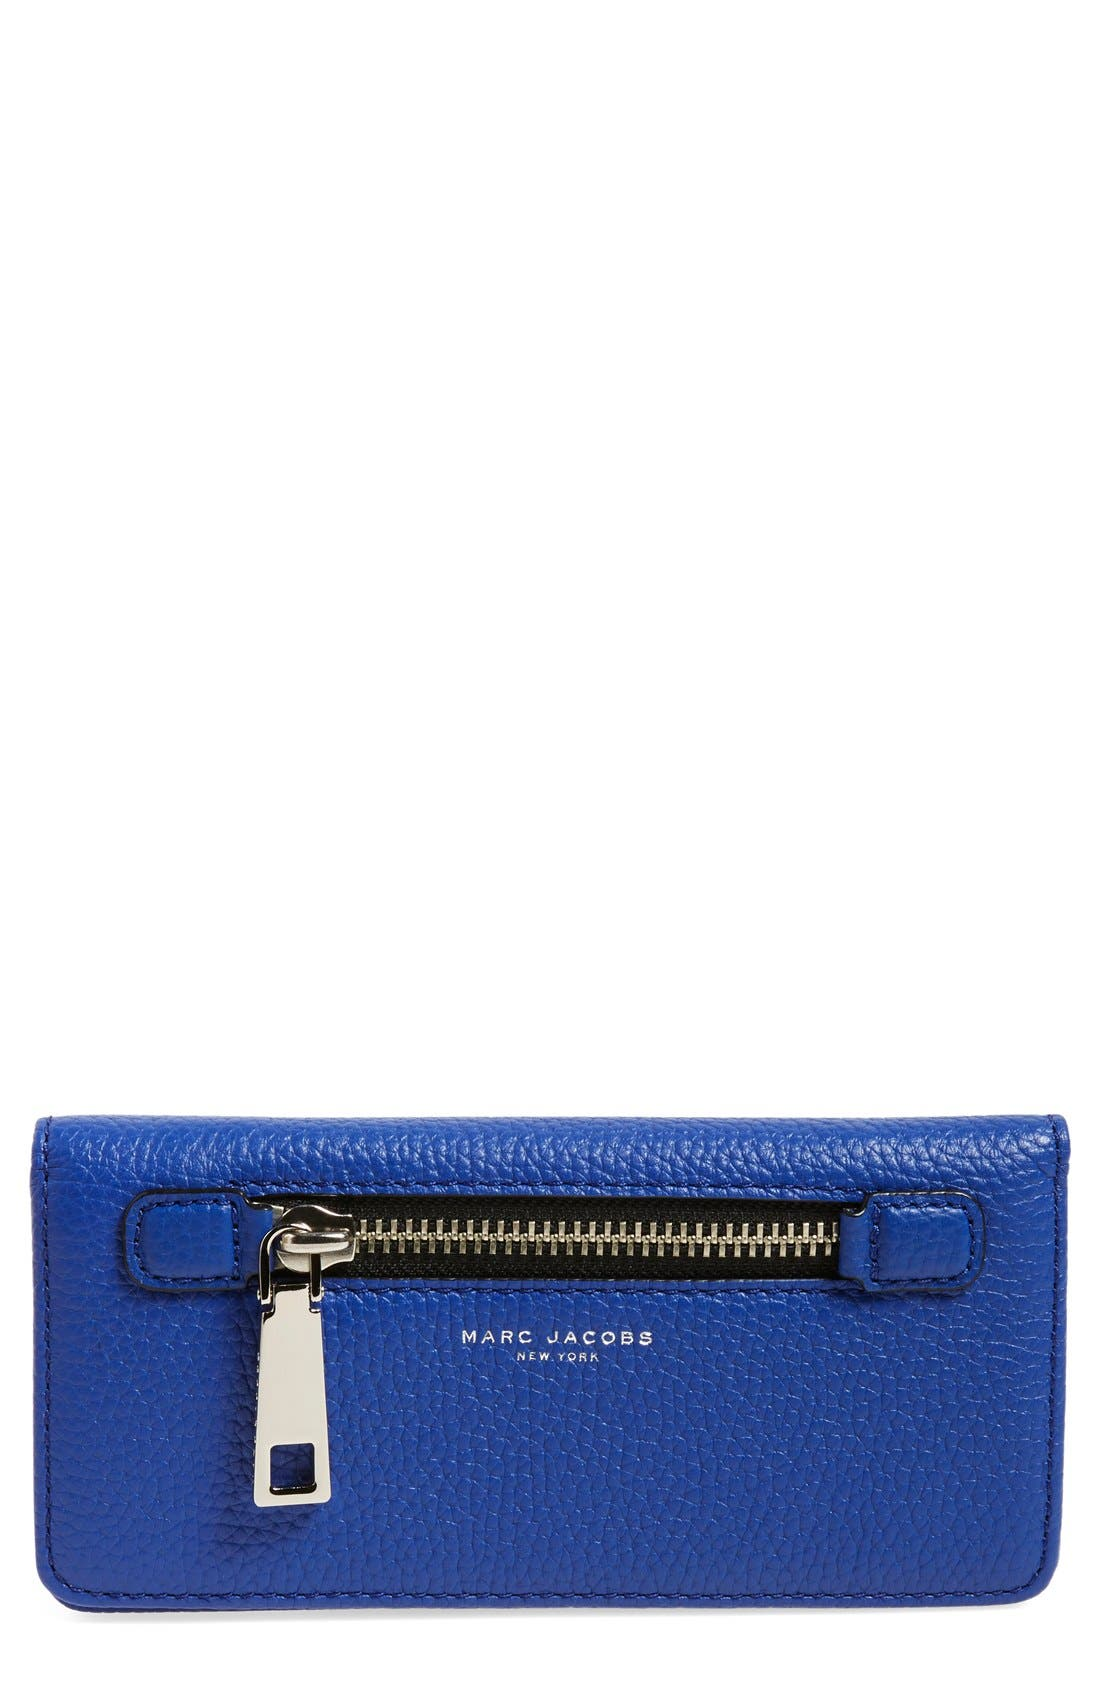 Alternate Image 1 Selected - MARC JACOBS 'Gotham' Leather Wallet